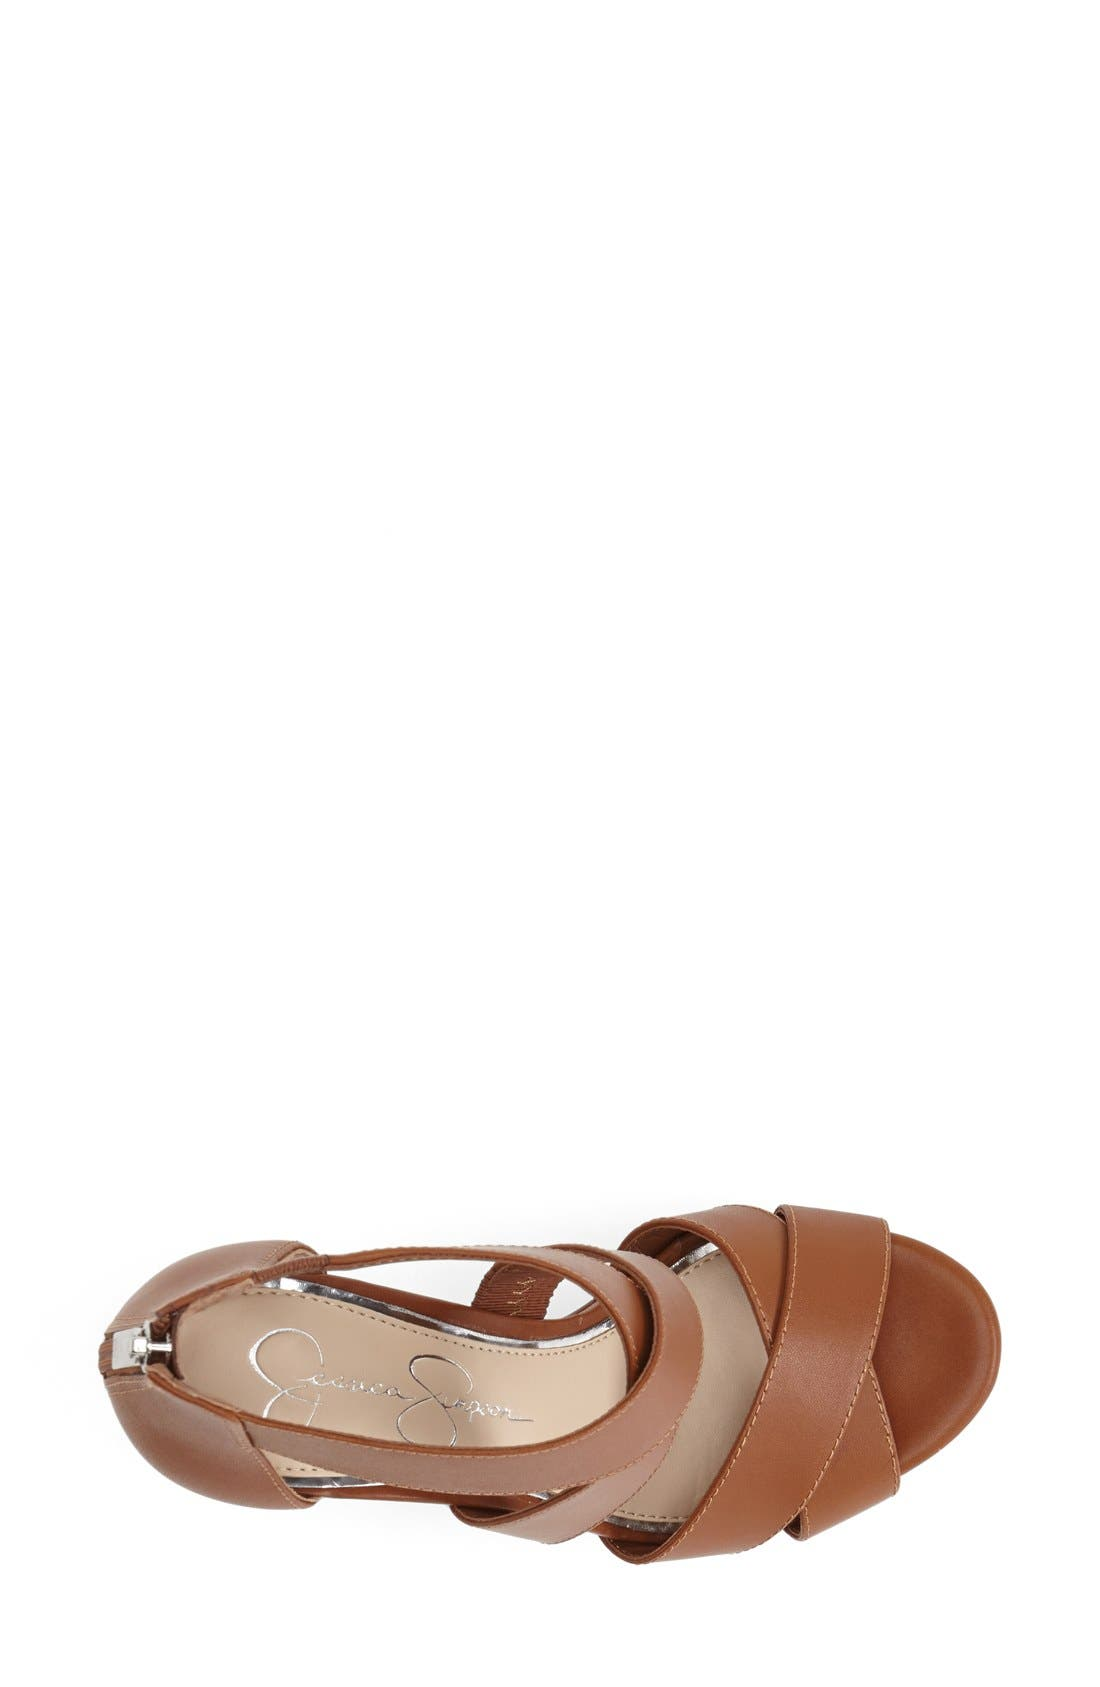 Alternate Image 3  - Jessica Simpson 'Jadyn' Strappy Wedge Sandal (Women)